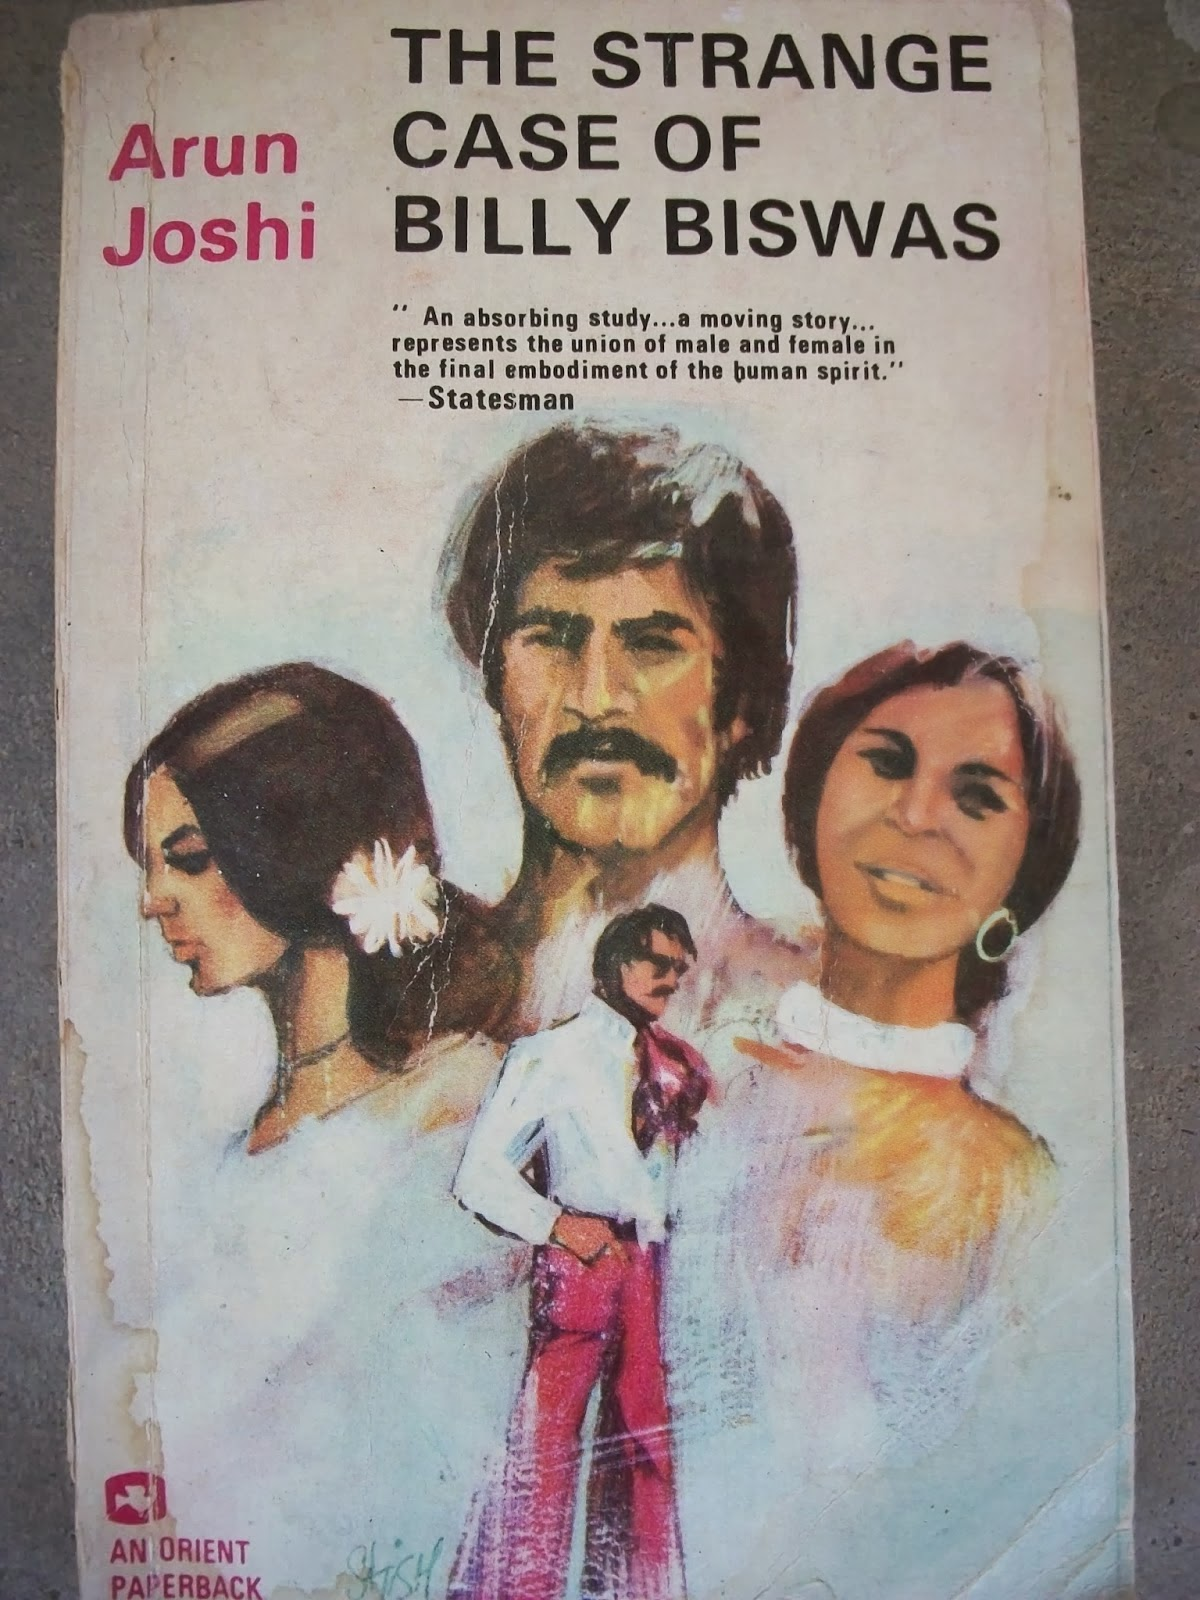 The strange case of billy biswas